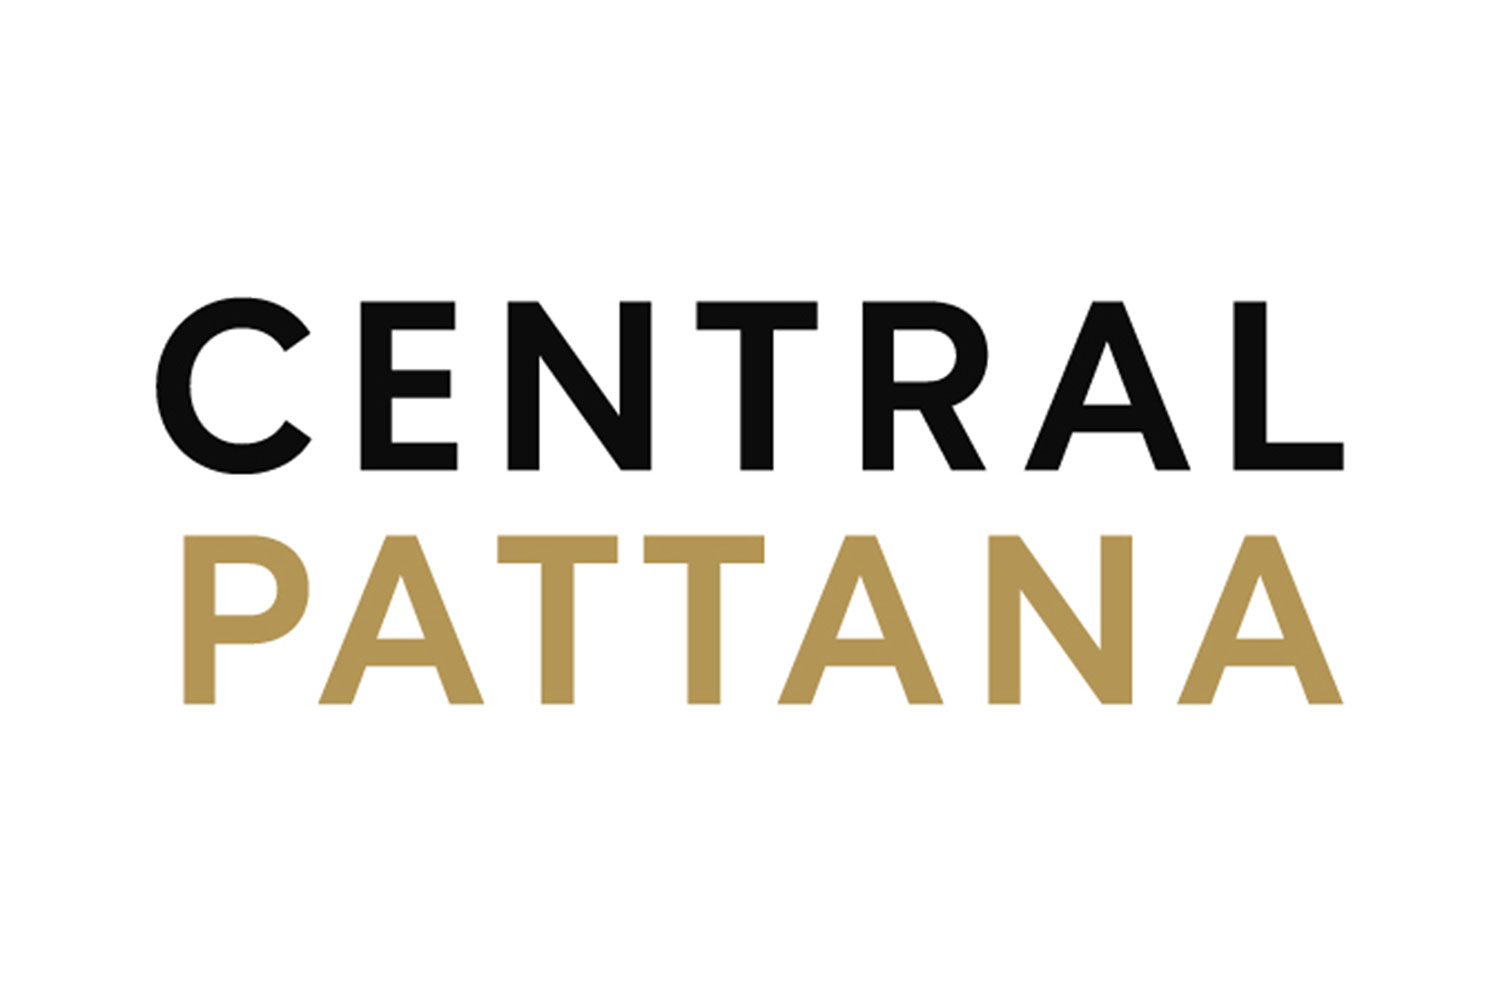 Central Pattana reports Q1 revenue of 9.528 million baht and net profit of 3.835 billion baht, reinforcing its strong financial position in face of the new COVID-19 wave